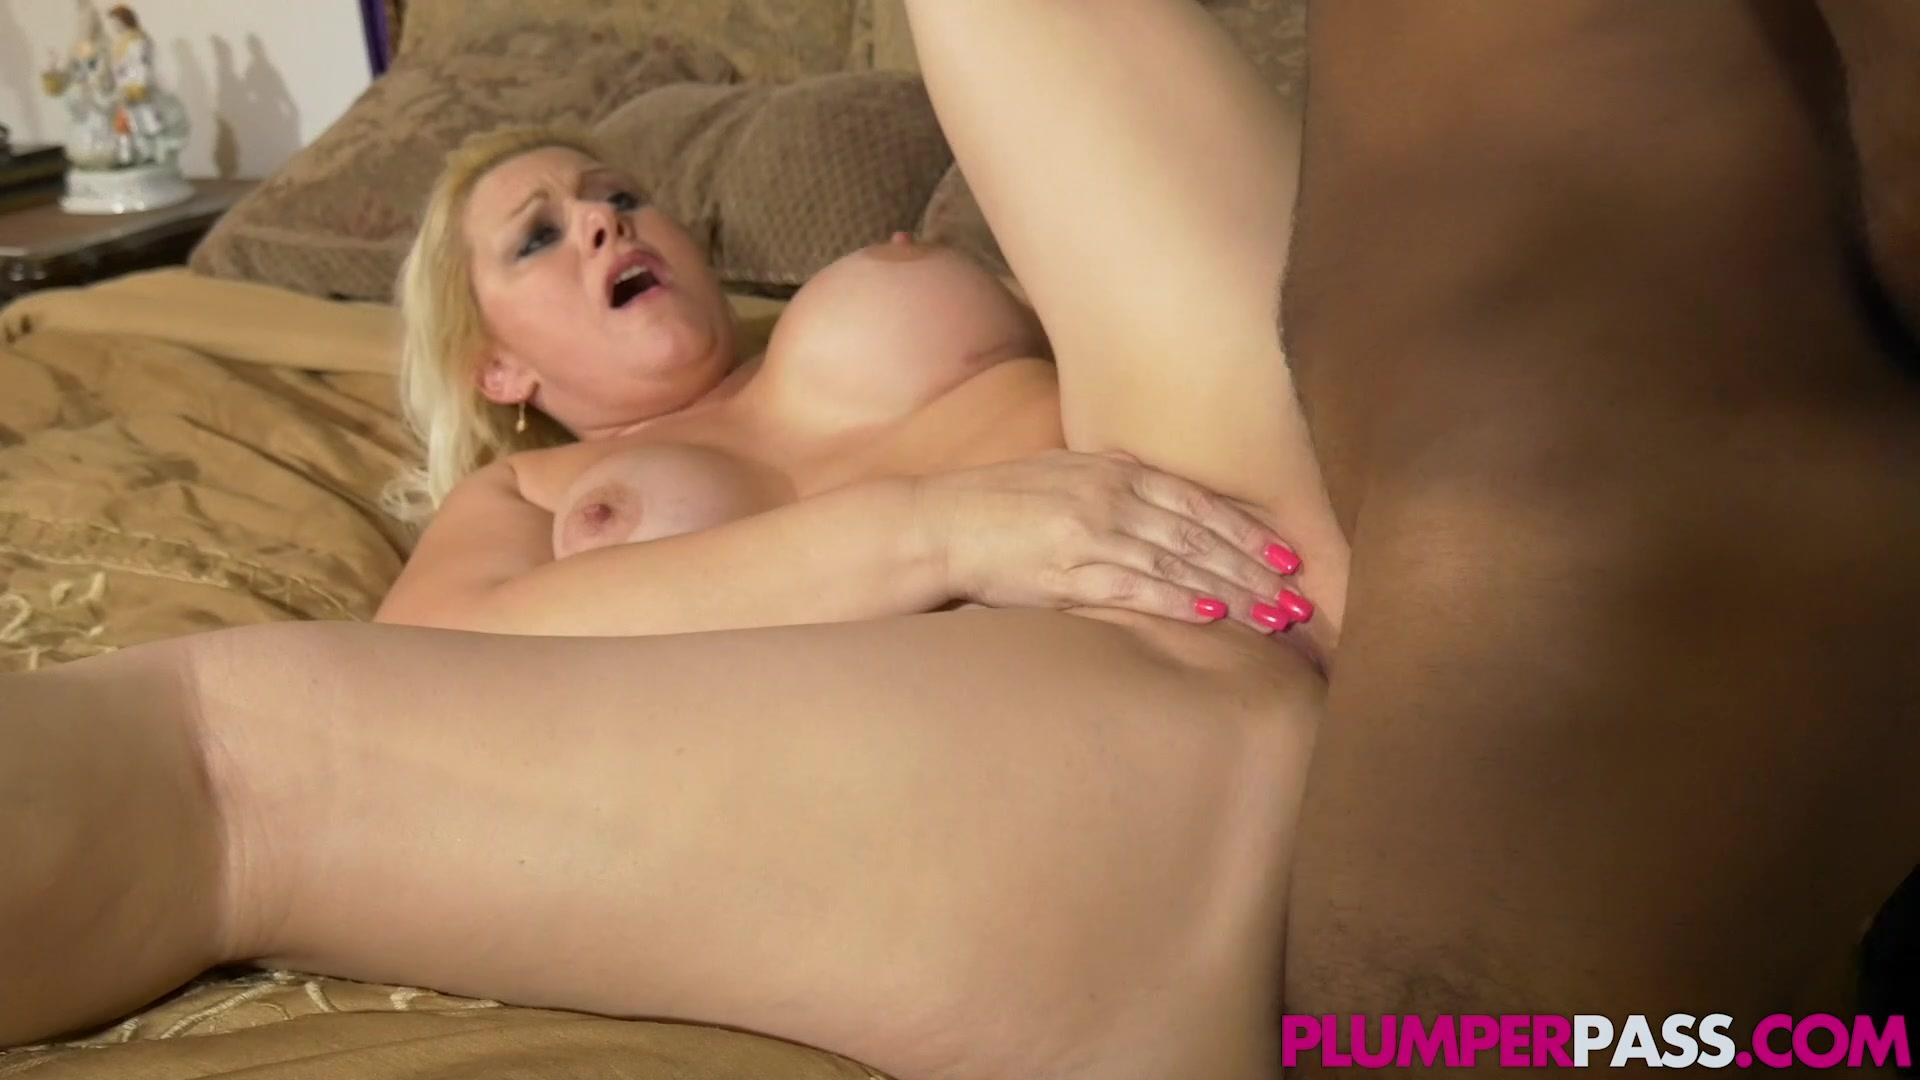 Plumper Pass – Selah Rain Party In Her Mouth